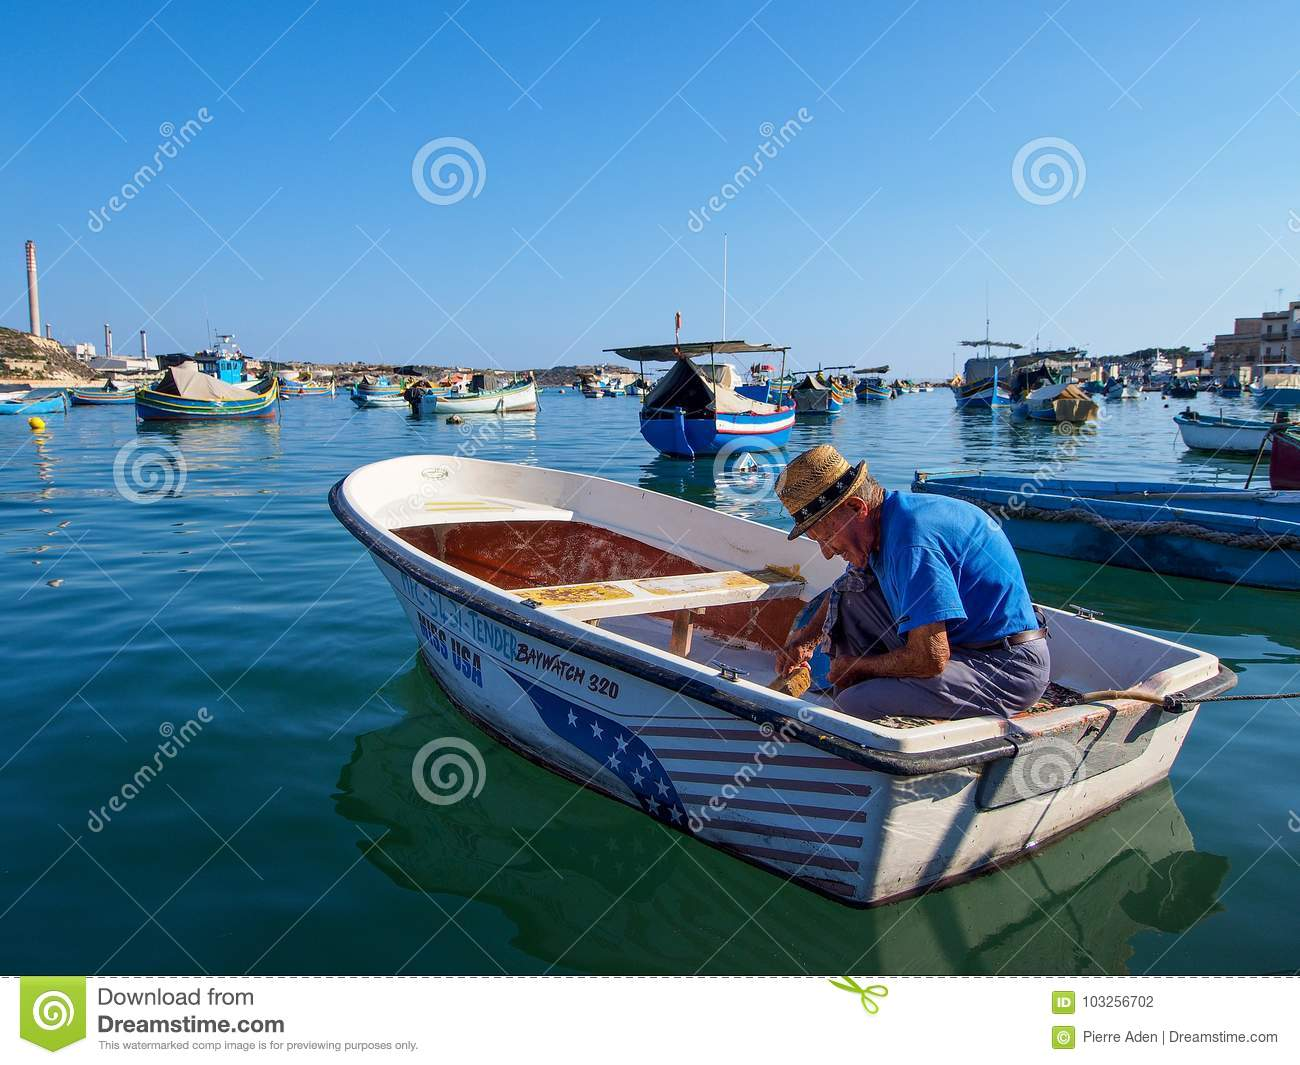 Marsaxlokk, Malta: October 08: Unidentified old man prepares fisher boat on October 08, 2014 in Marsaxlokk, Malta.